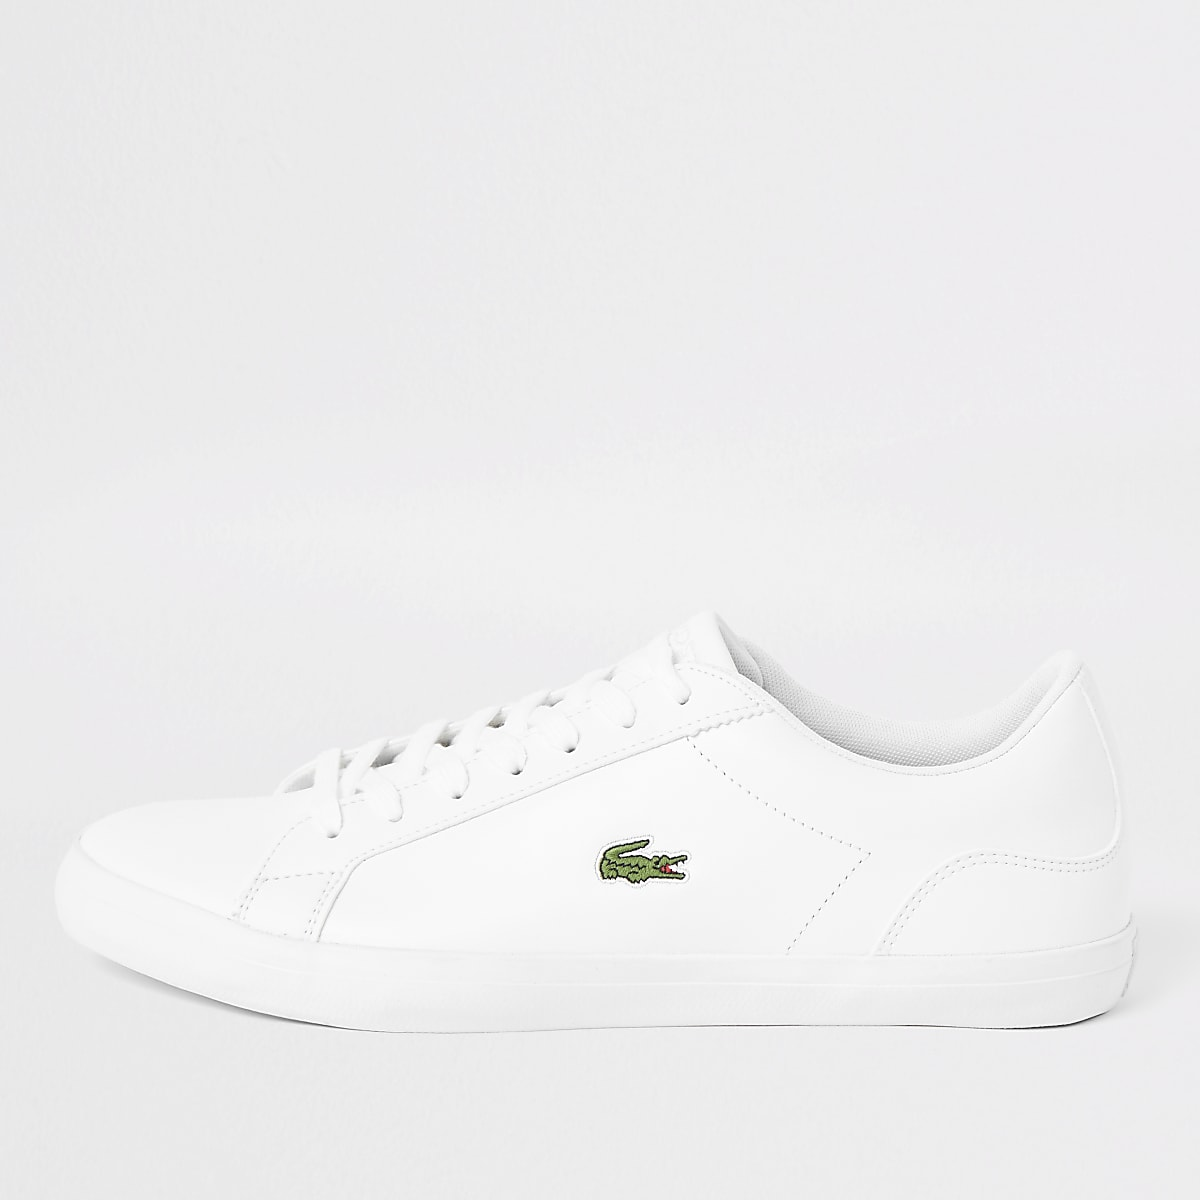 Lacoste white leather Lerond sneakers